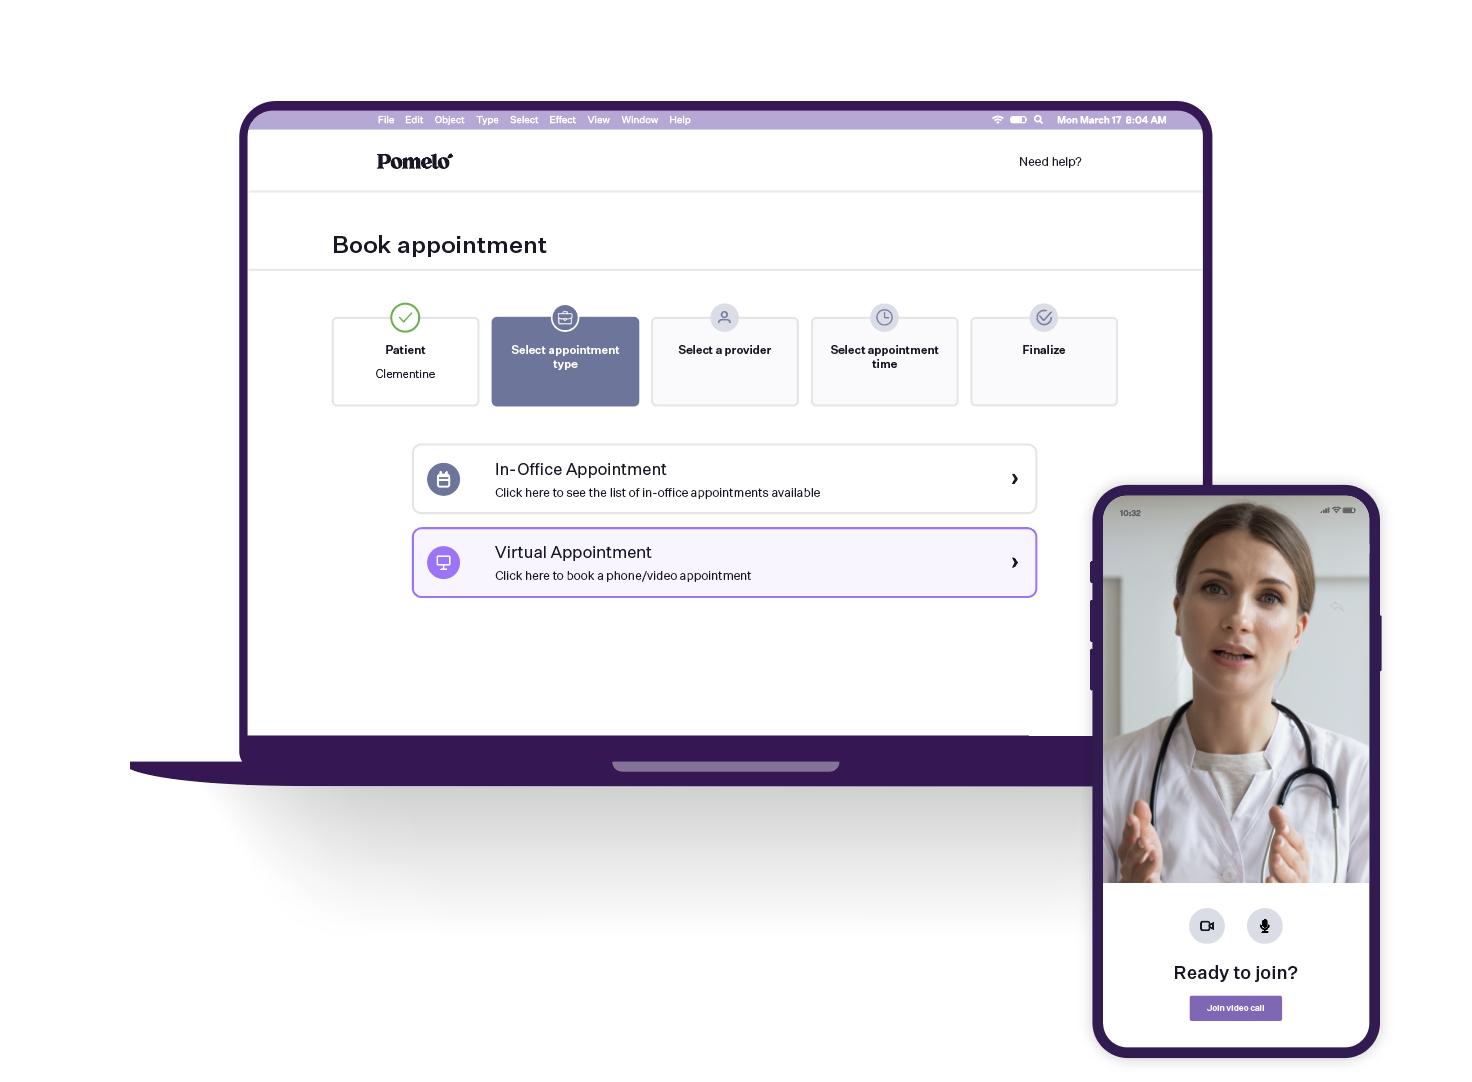 Engage with your patients through secure, compliant video consultations, without any additional software downloads or registrations.